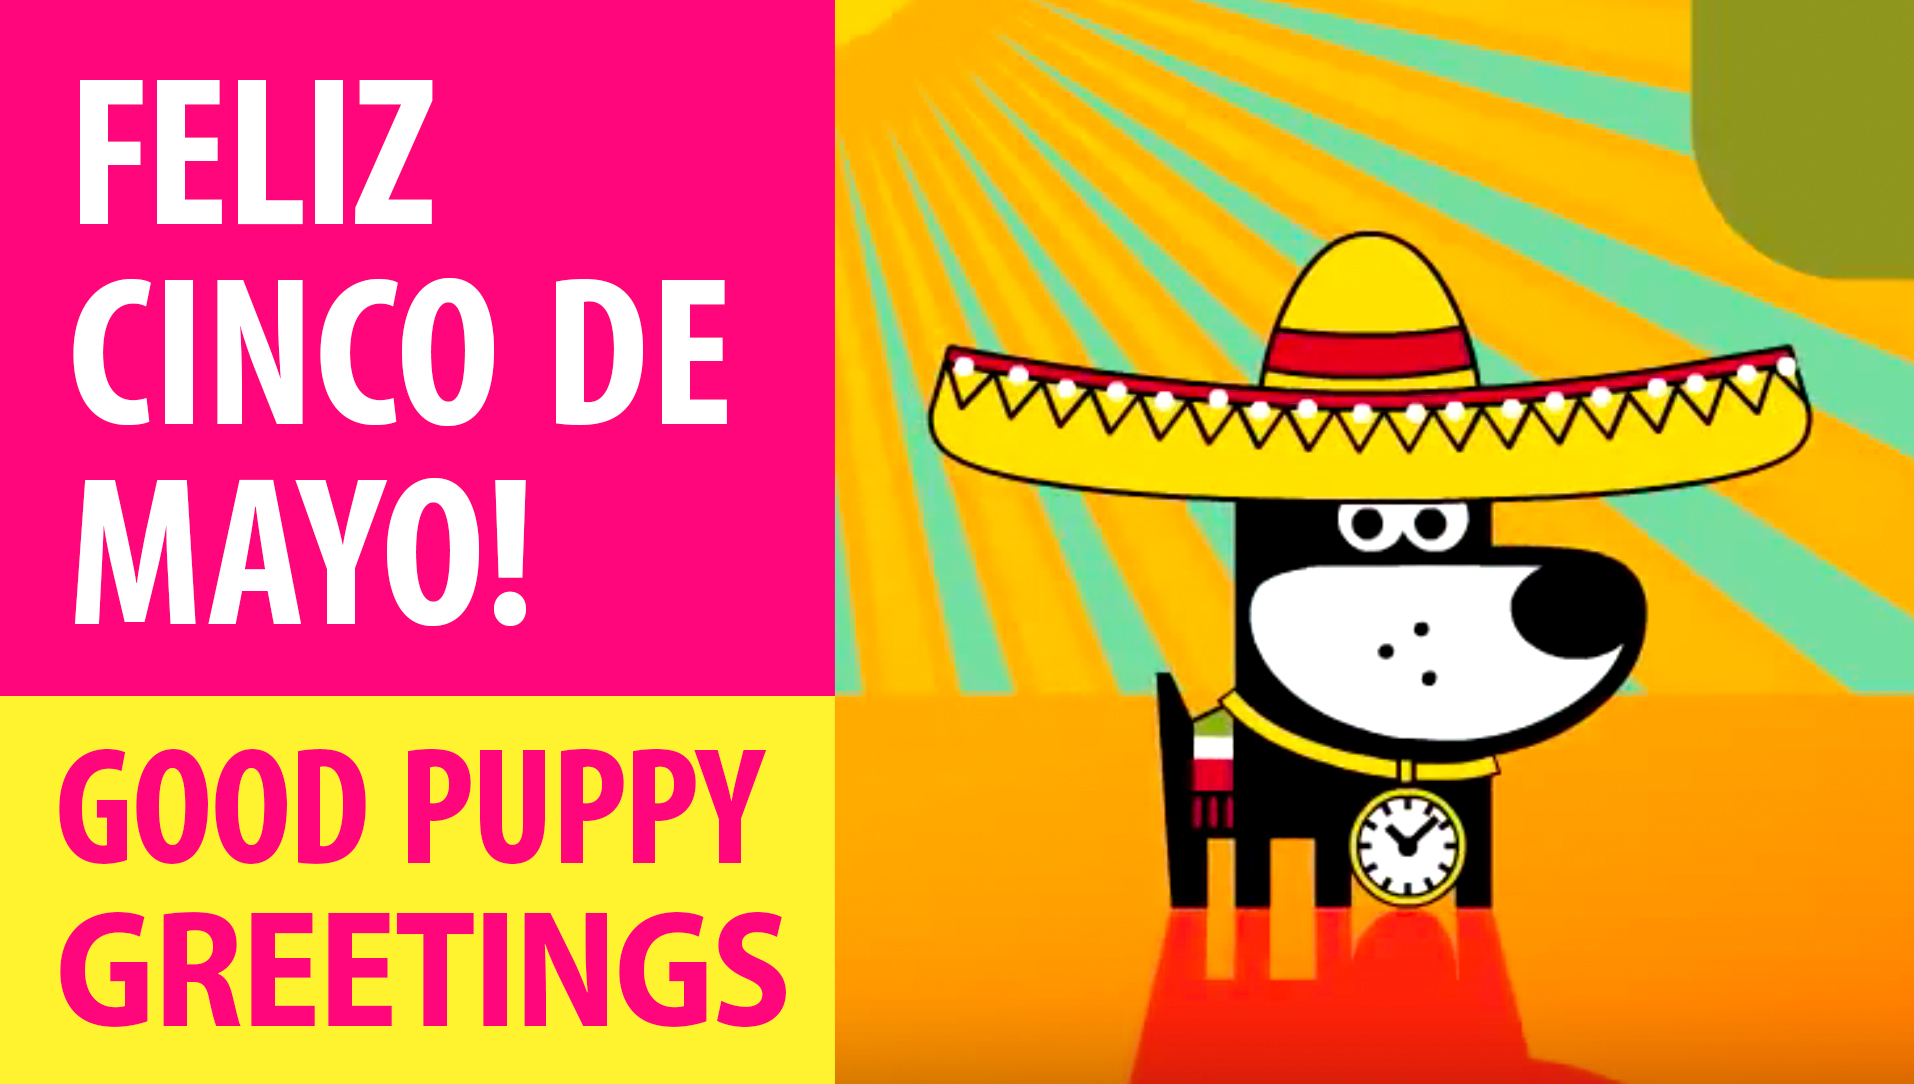 Feliz Cinco De Mayo! Animated Greeting Cards - Free E-Cards By GOOD PUPPY